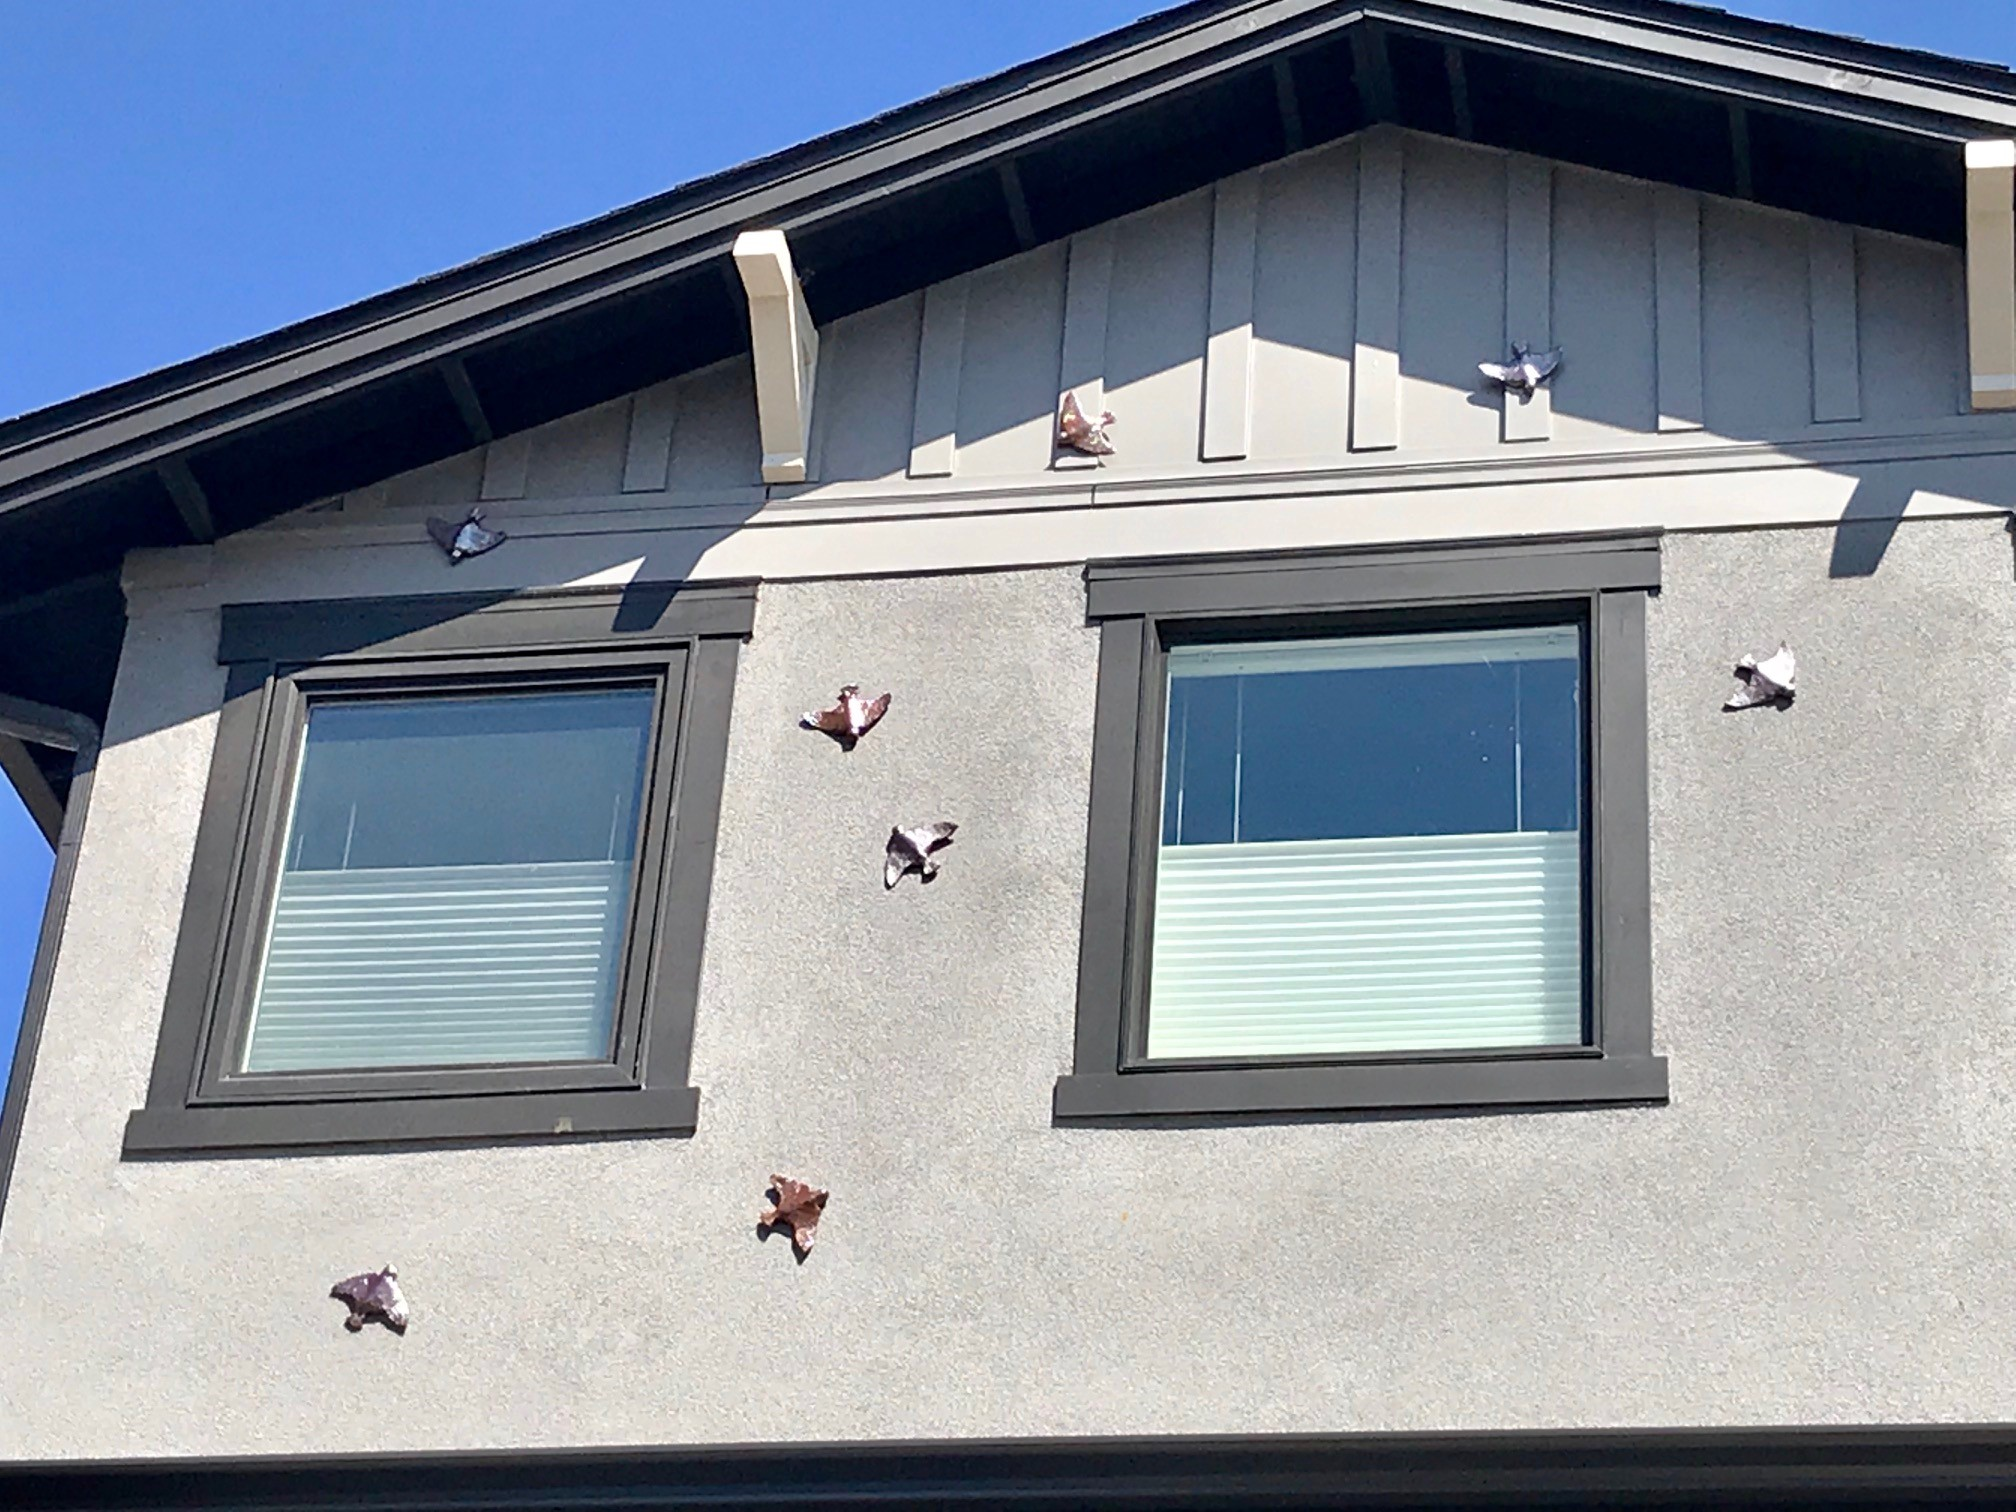 Swallows installed